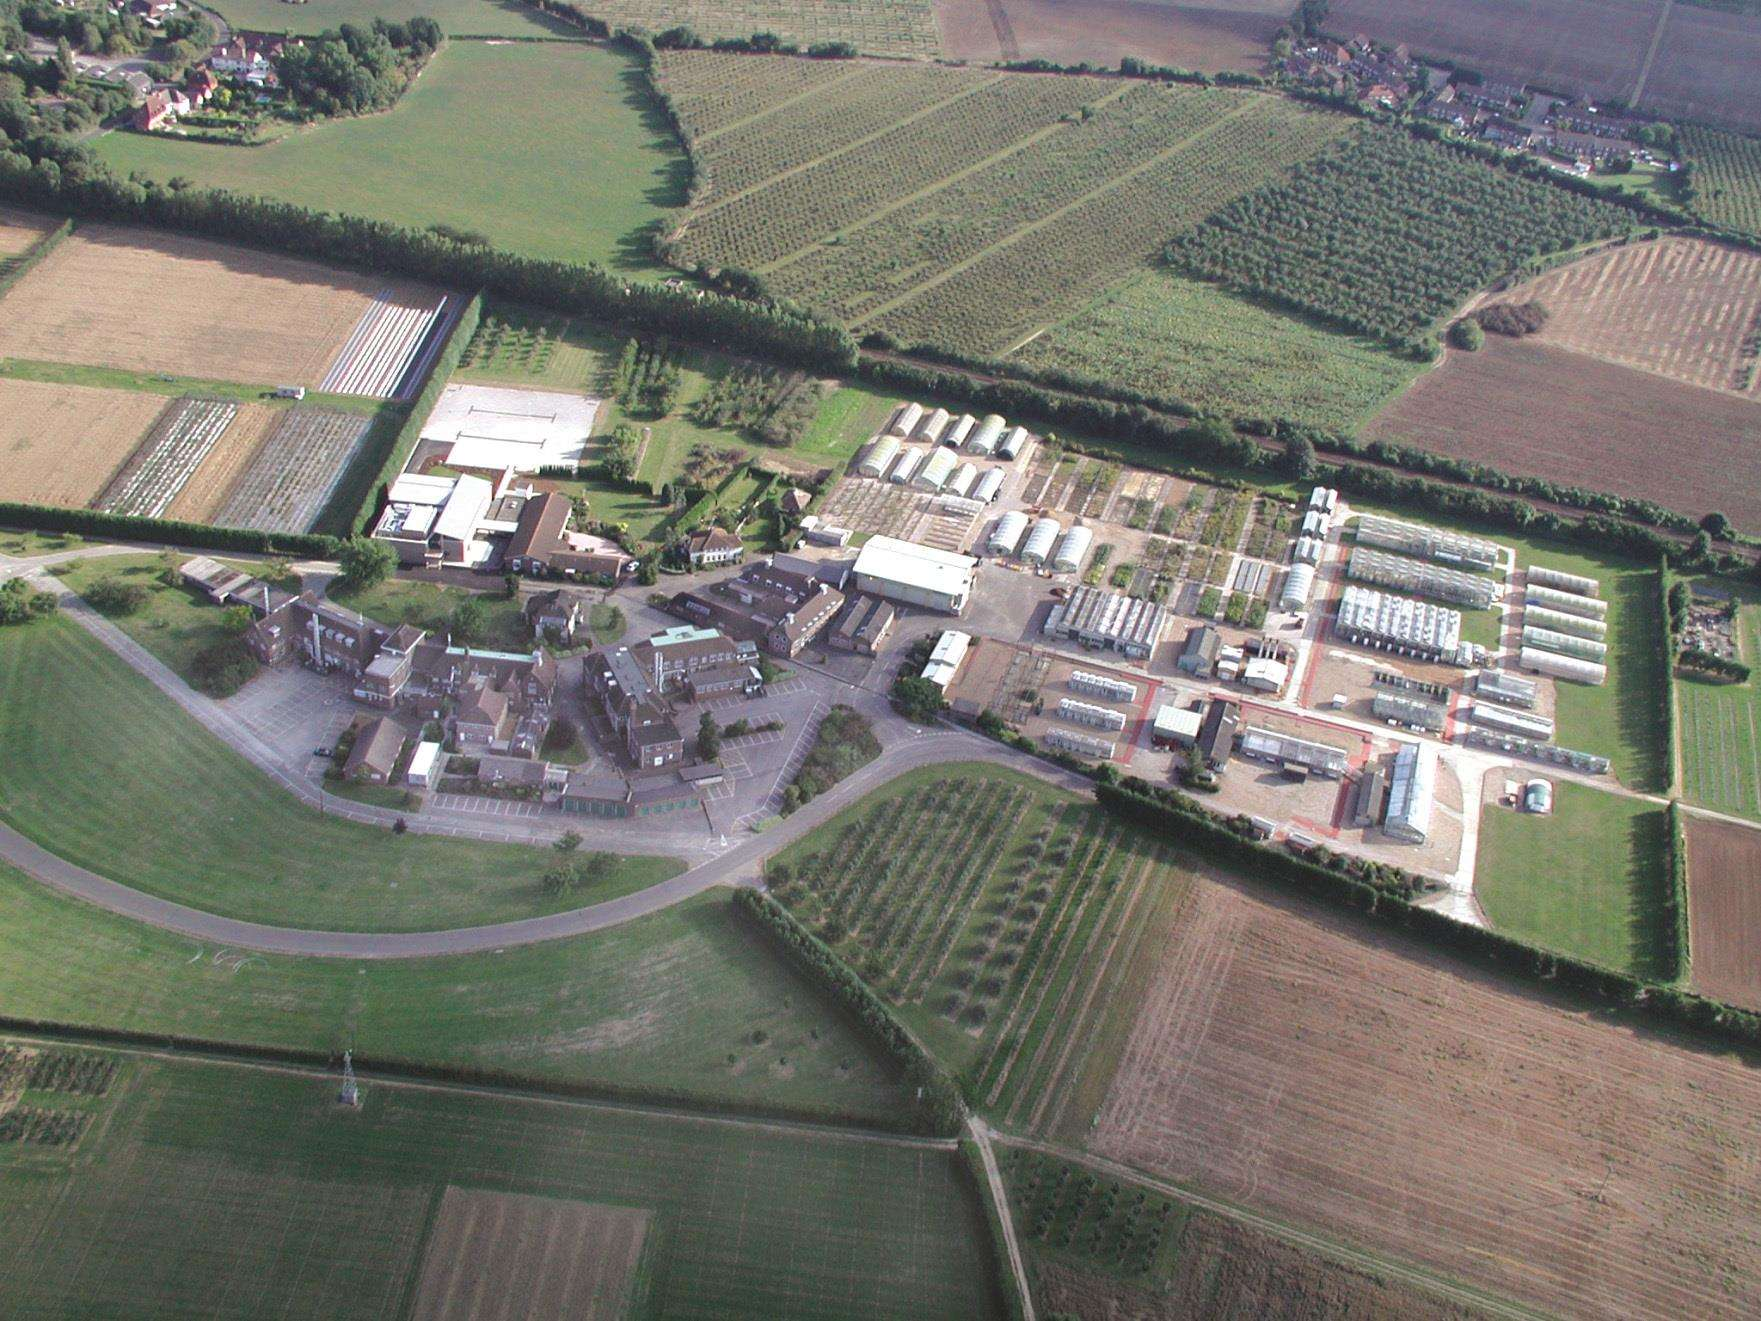 An aerial view of the research site. Picture: East Malling Research Centre